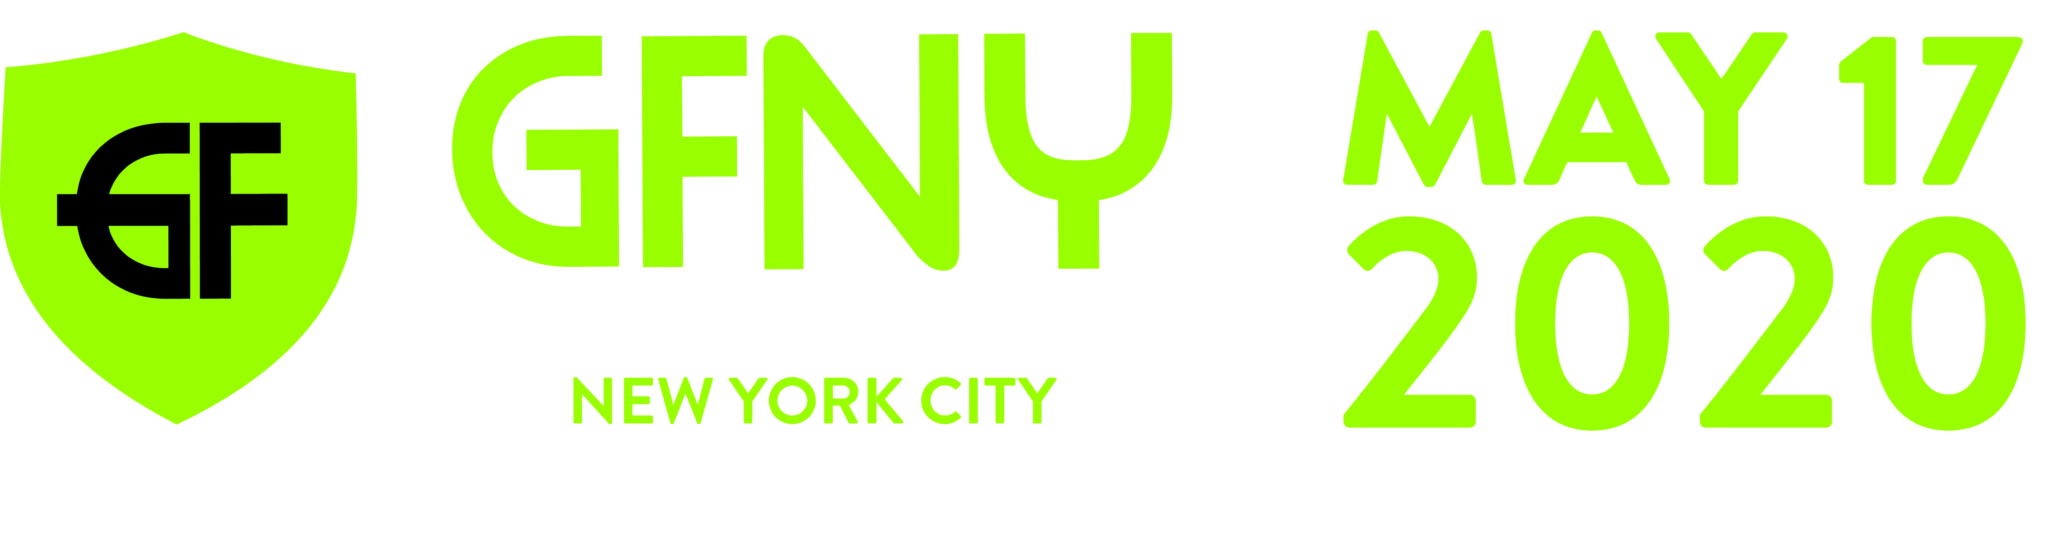 Calendario 2020 Vip.Gfny World Championship New York City Gfny Cycling